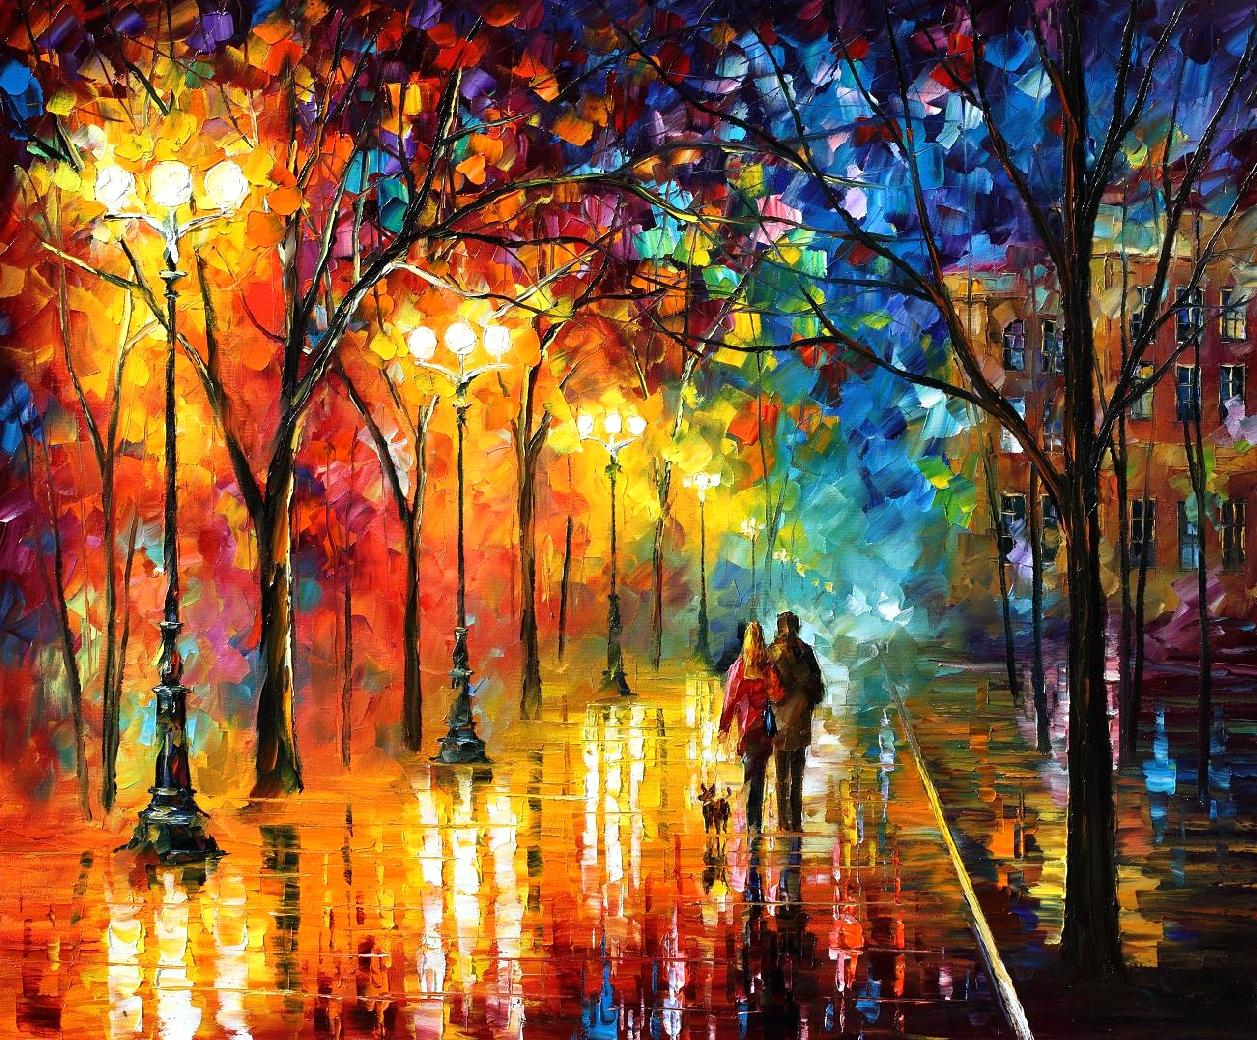 Leonid Afremov Oil On Canvas Palette Knife Buy Original Paintings Art Famous Artists Biography Official Page Online Gallery Landscape Park